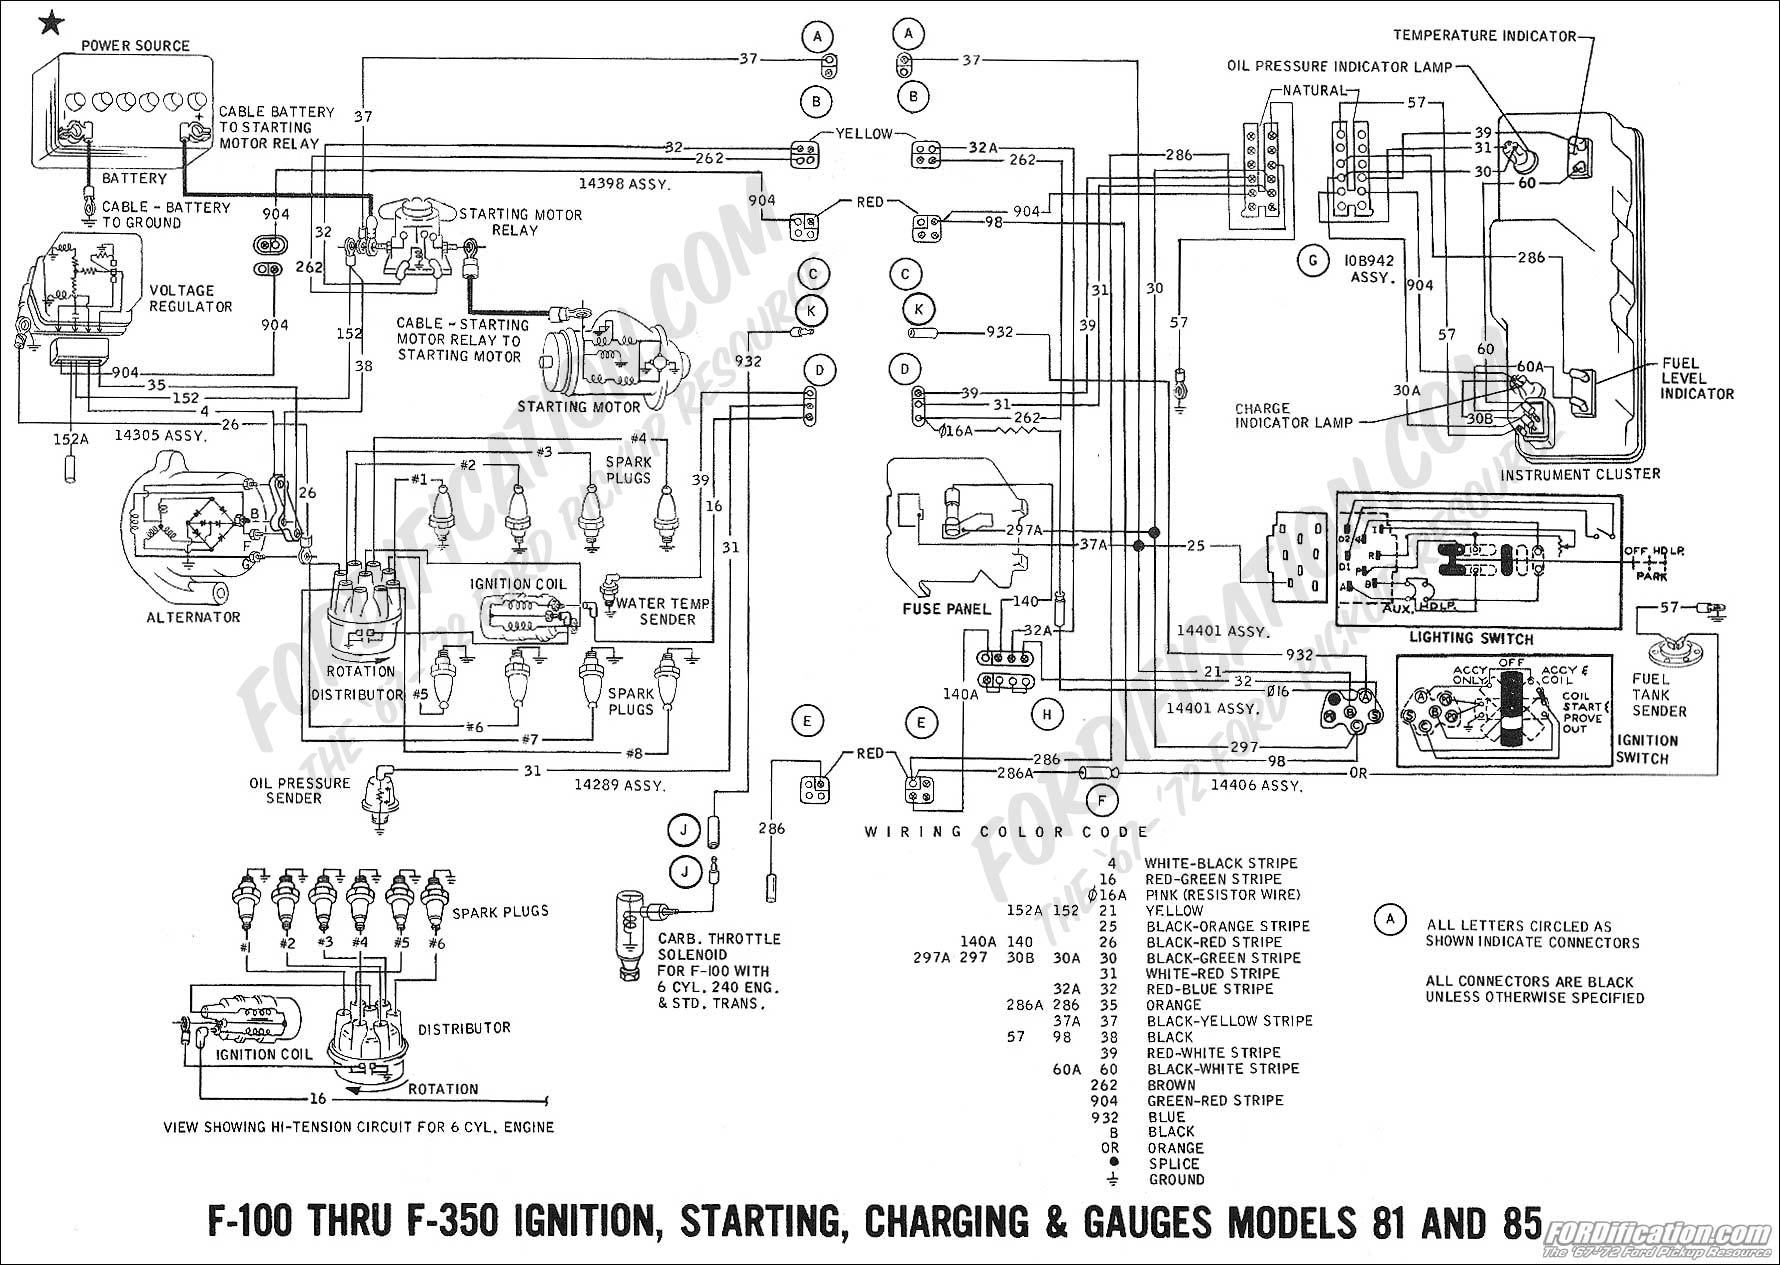 Delco Remy 24 Volt Alternator Wiring Diagram